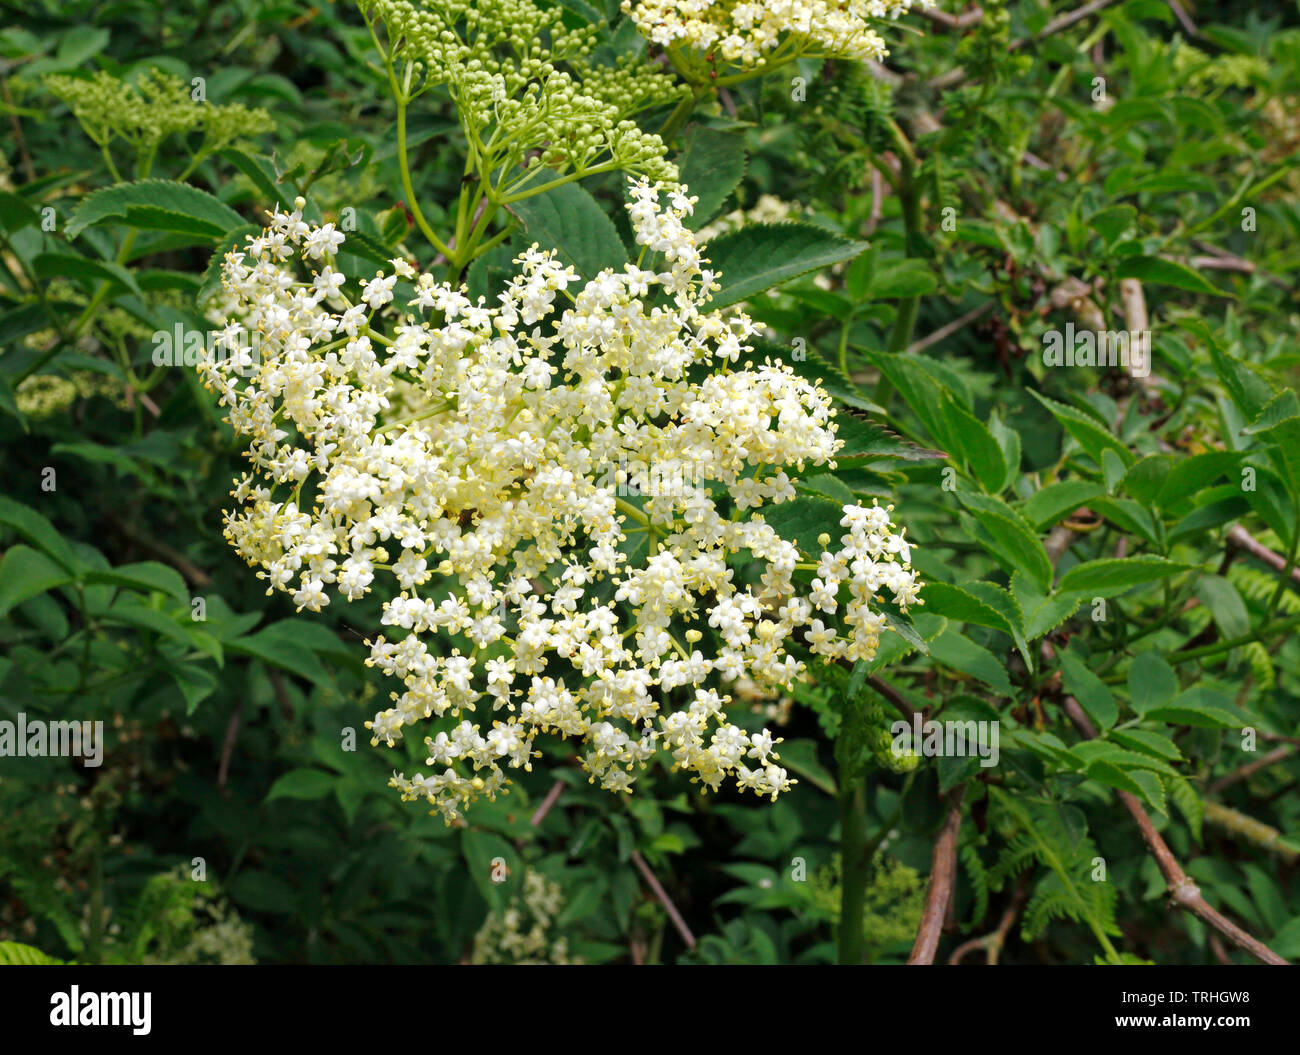 A view of the flower of Elder, Sambucus nigra, in a nature reserve at Alderford, Norfolk, England, United Kingdom, Europe. - Stock Image